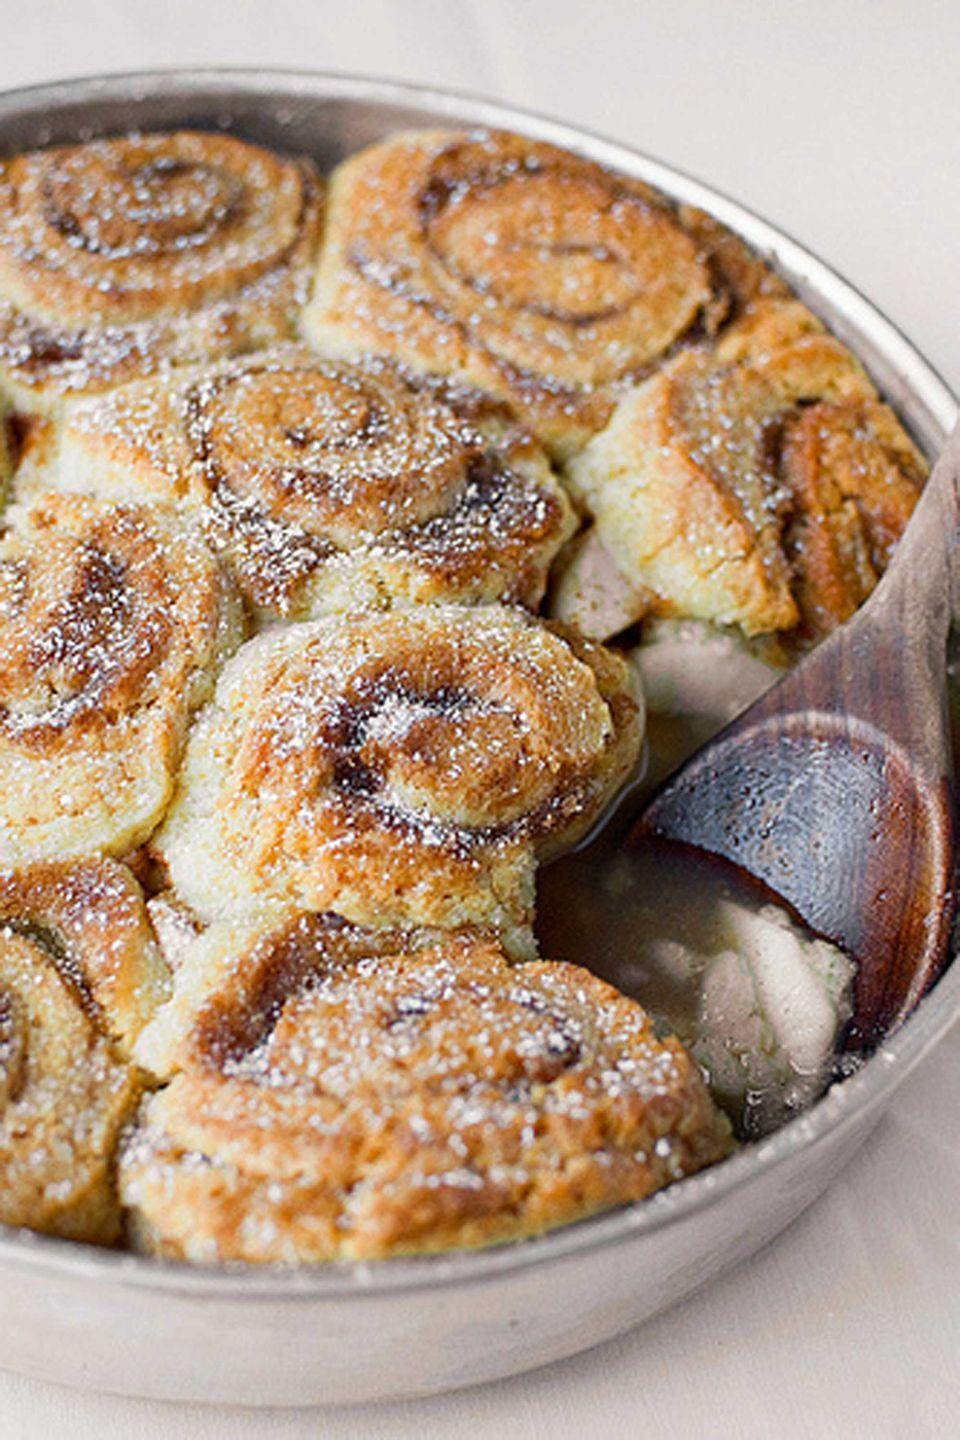 """<p>Doughy biscuits combine with a cinnamon and apple filling, creating this fall dessert that tastes as addicting as it looks.</p><p><strong>Get the recipe at <a rel=""""nofollow noopener"""" href=""""http://cheeseandchoco.blogspot.com/2011/10/pinwheel-apple-cobbler.html"""" target=""""_blank"""" data-ylk=""""slk:Cheese and Chocolate"""" class=""""link rapid-noclick-resp"""">Cheese and Chocolate</a>.</strong><br></p><p><a rel=""""nofollow noopener"""" href=""""https://www.amazon.com/Calphalon-Signature-Nonstick-Bakeware-2000606/dp/B06XGBV3PG"""" target=""""_blank"""" data-ylk=""""slk:SHOP CAKE PANS"""" class=""""link rapid-noclick-resp"""">SHOP CAKE PANS</a></p>"""